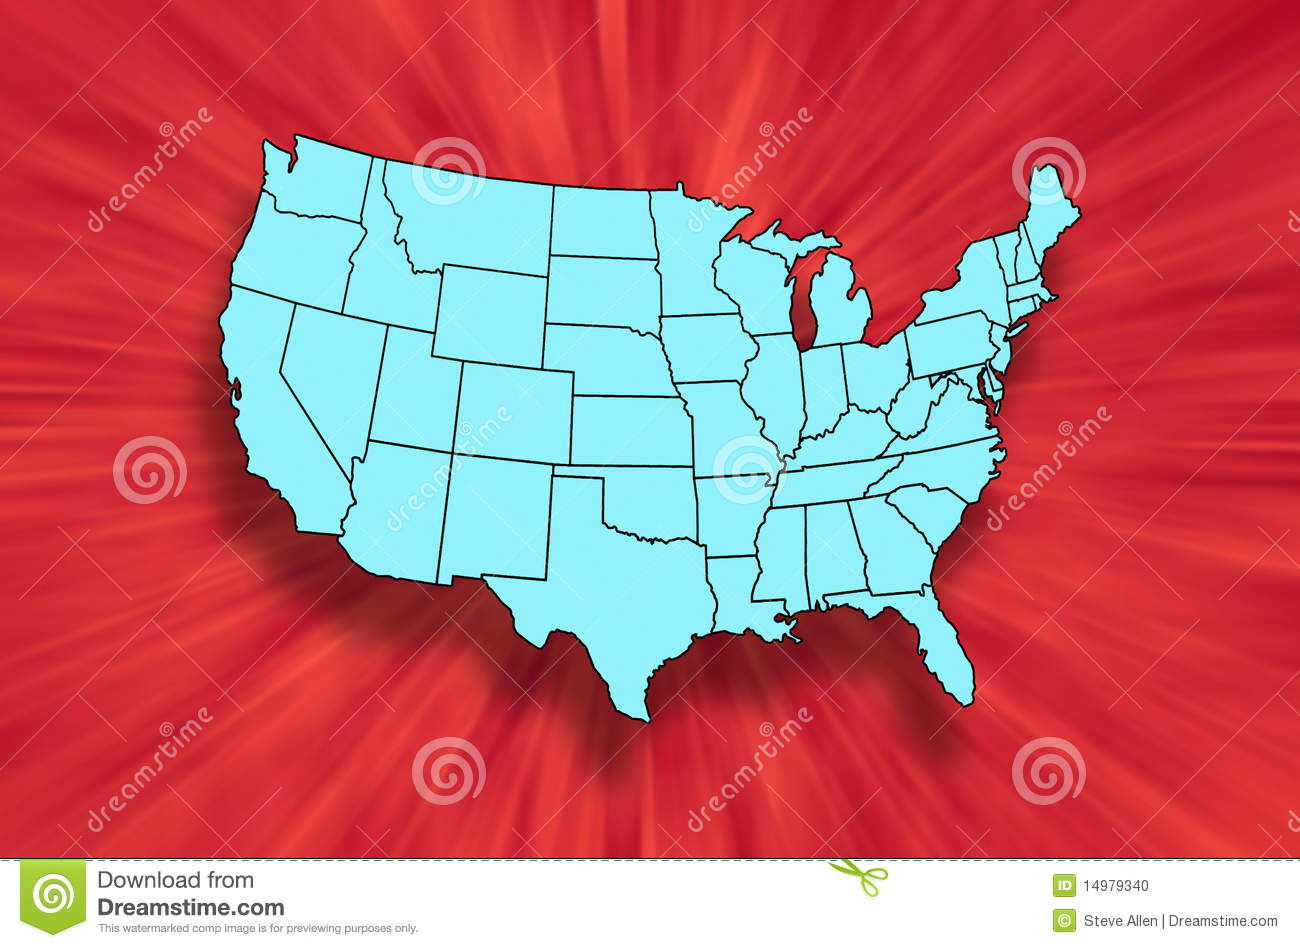 Map of US Mainland States stock illustration  Illustration of maps     Download Map of US Mainland States stock illustration  Illustration of maps    14979340